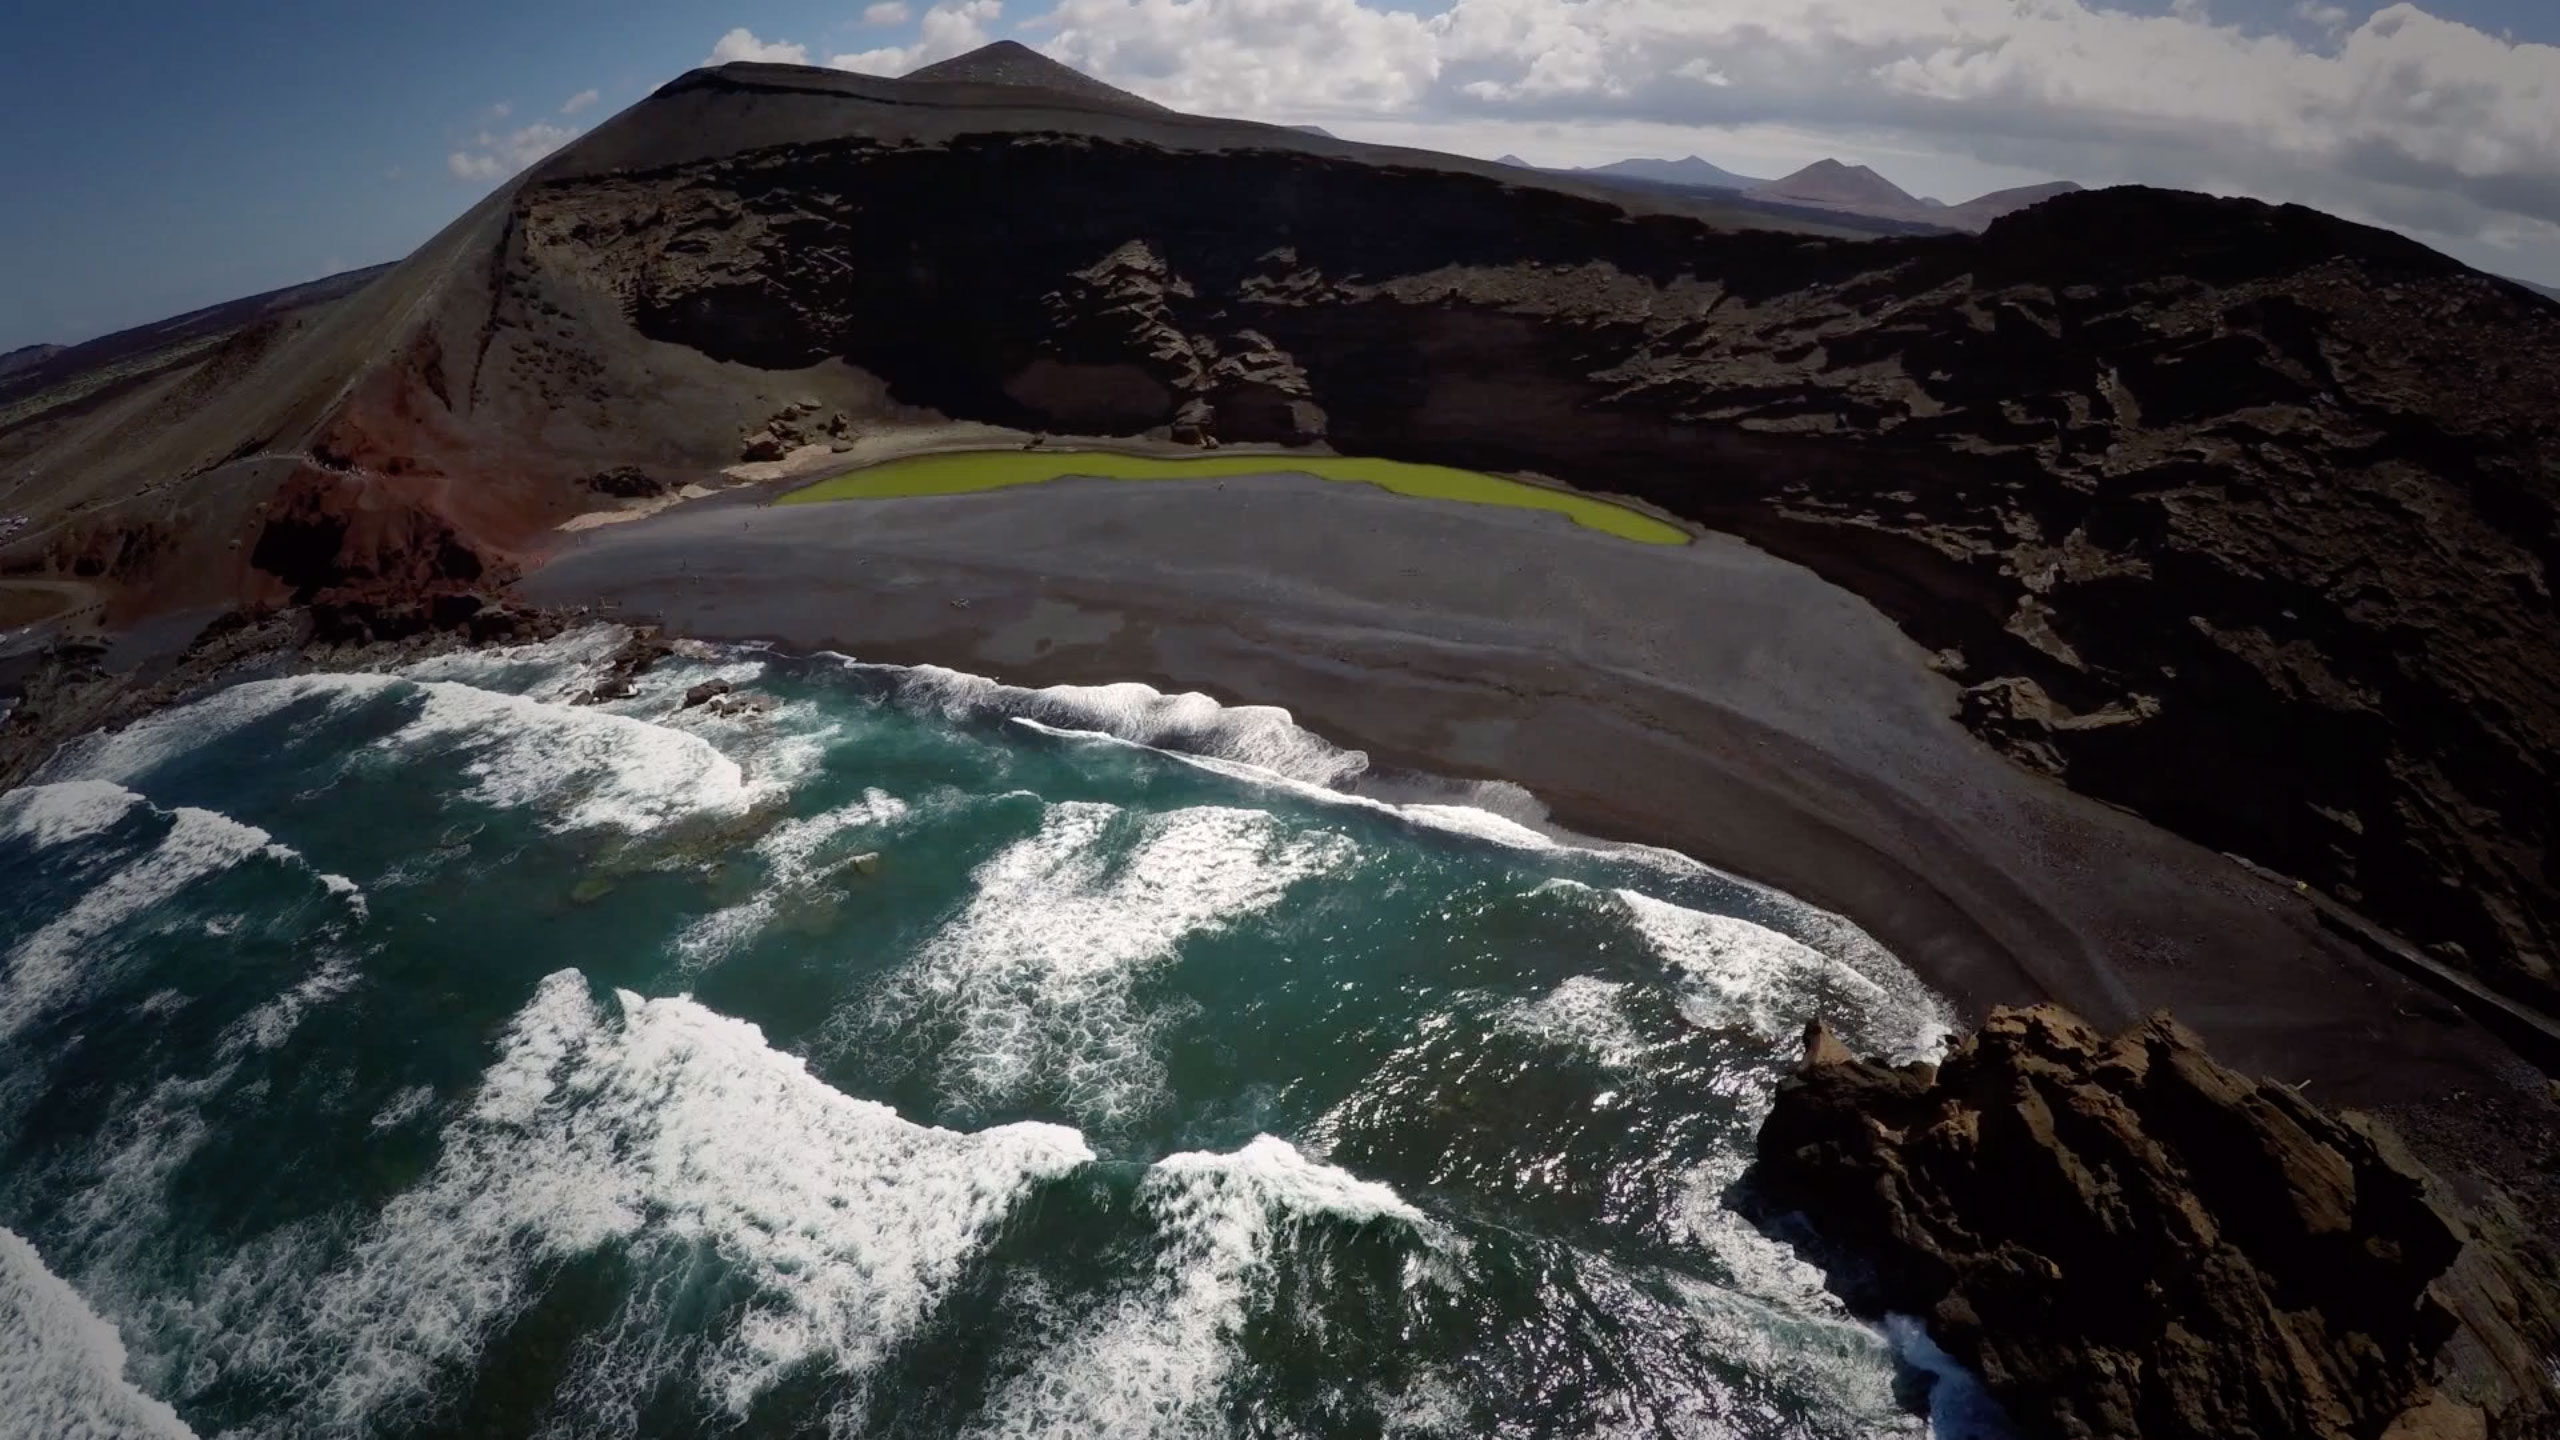 Stunning image of the waves crashing near the black volcanic rock on Lanzarote Island